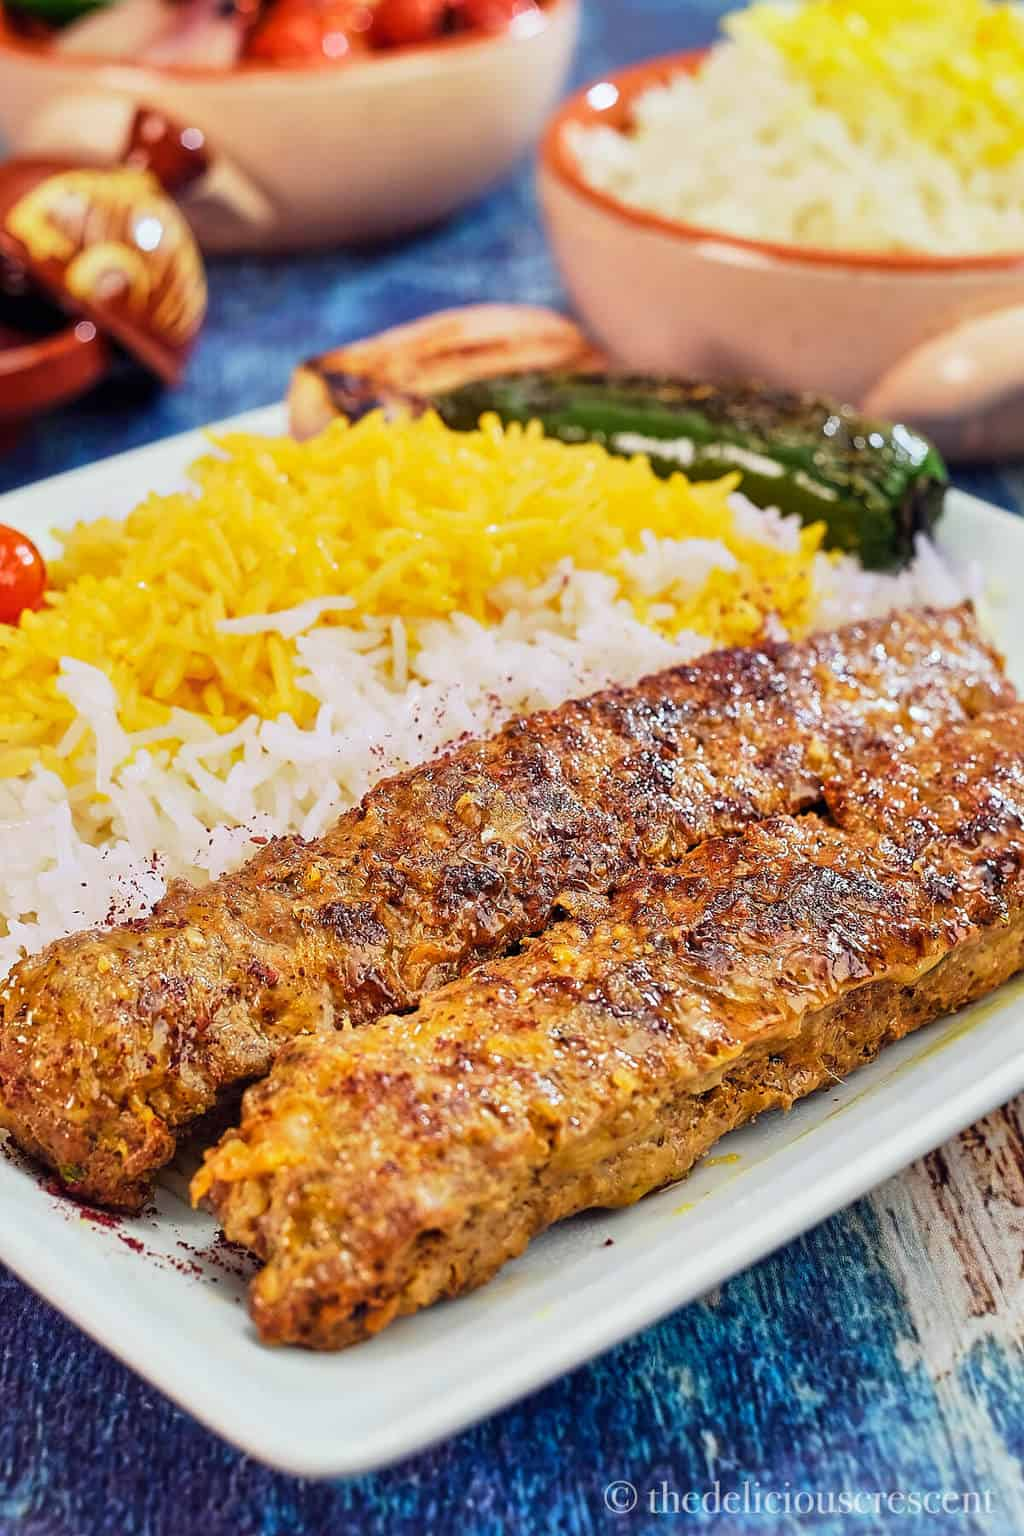 Kabab tabei serve with Persian saffron rice and vegetables.